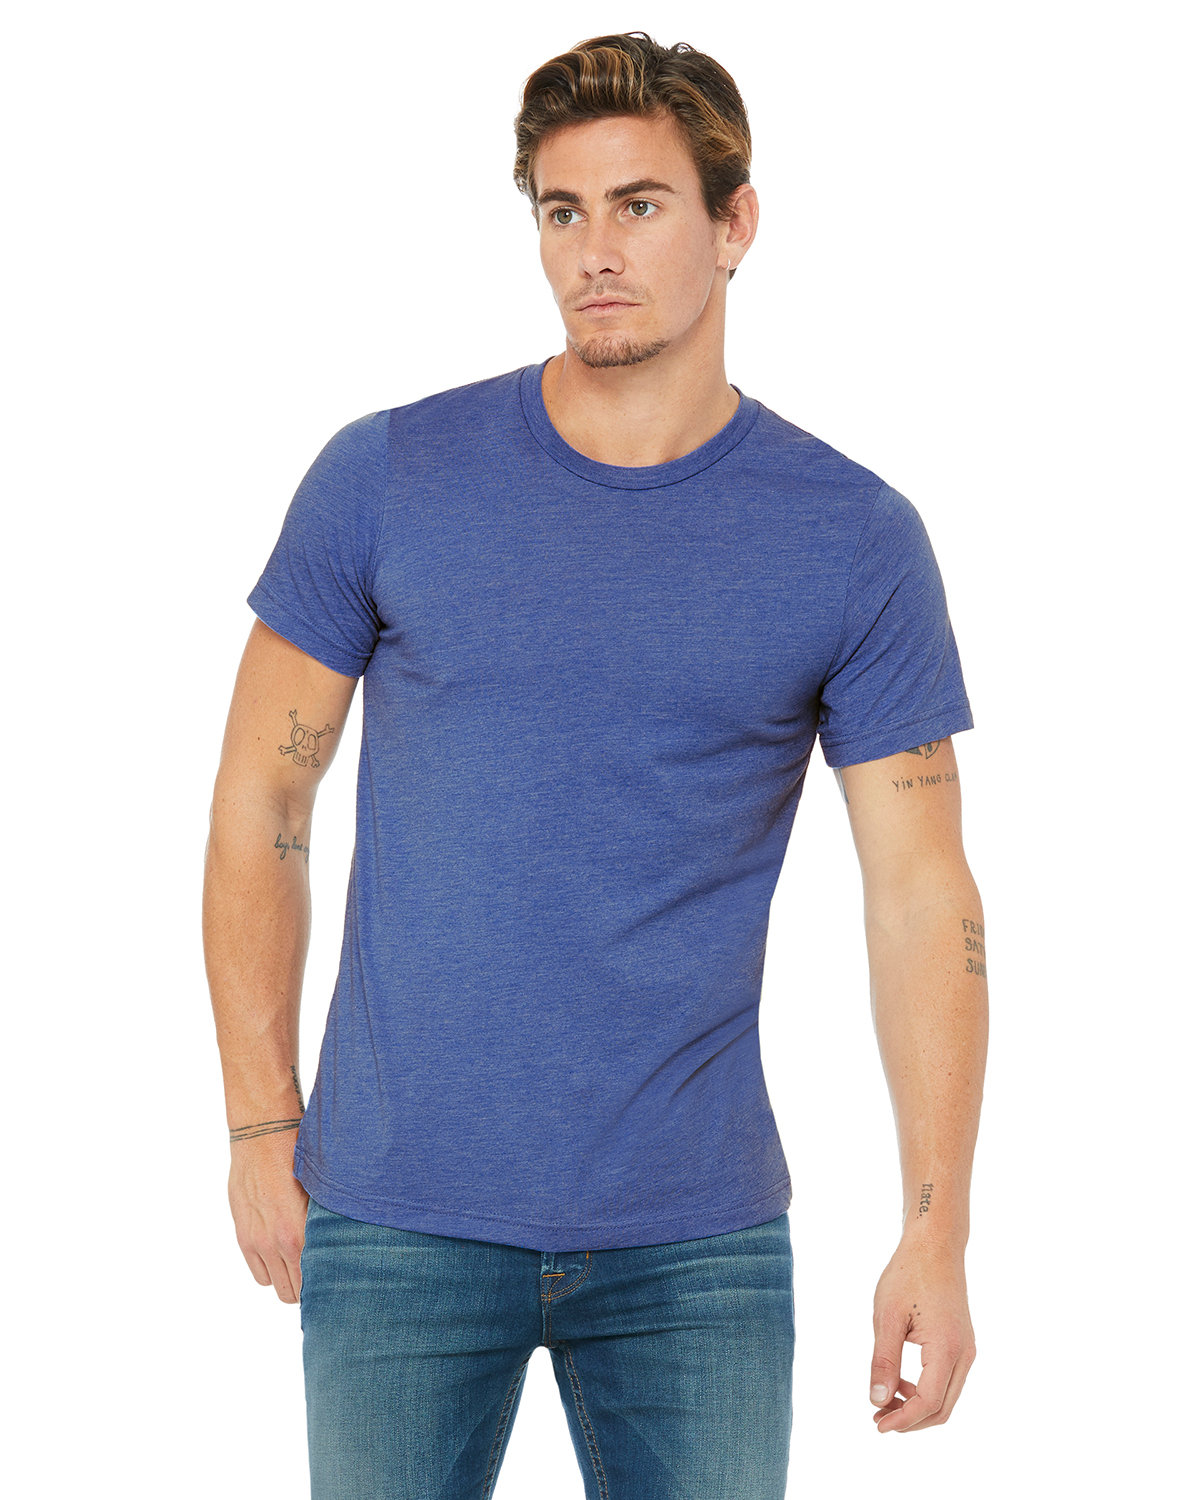 Bella + Canvas Unisex Heather CVC T-Shirt HTHR TRUE ROYAL